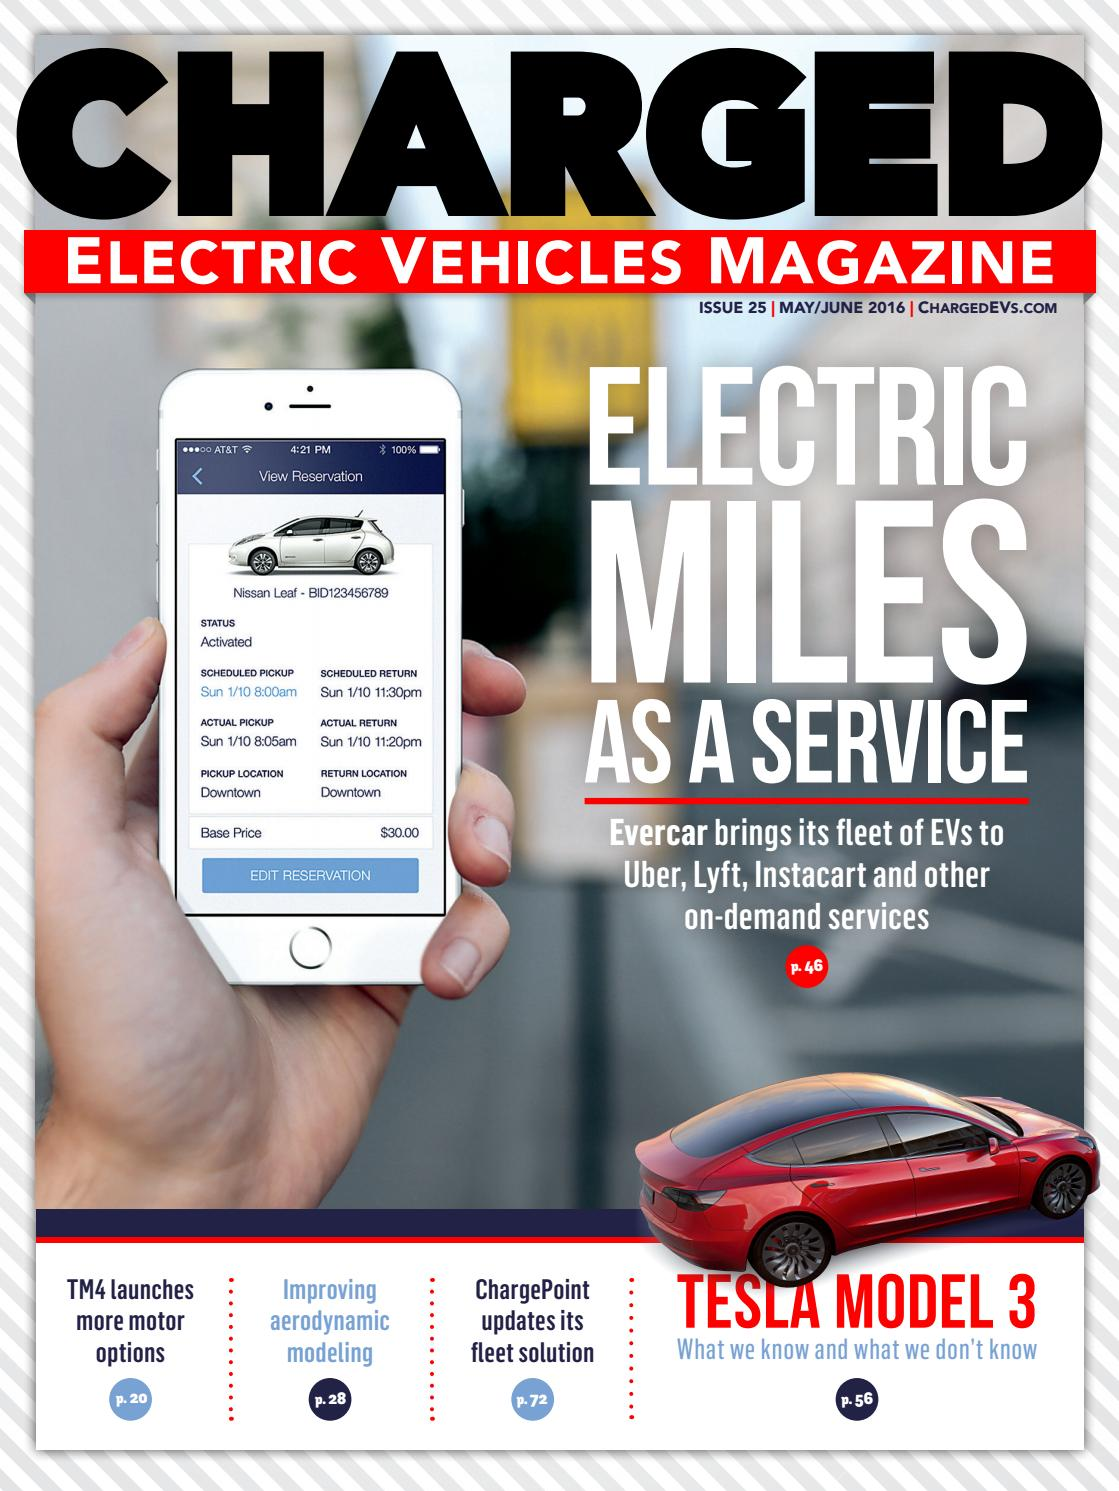 CHARGED Electric Vehicles Magazine - Issue 25 MAY/JUN 2016